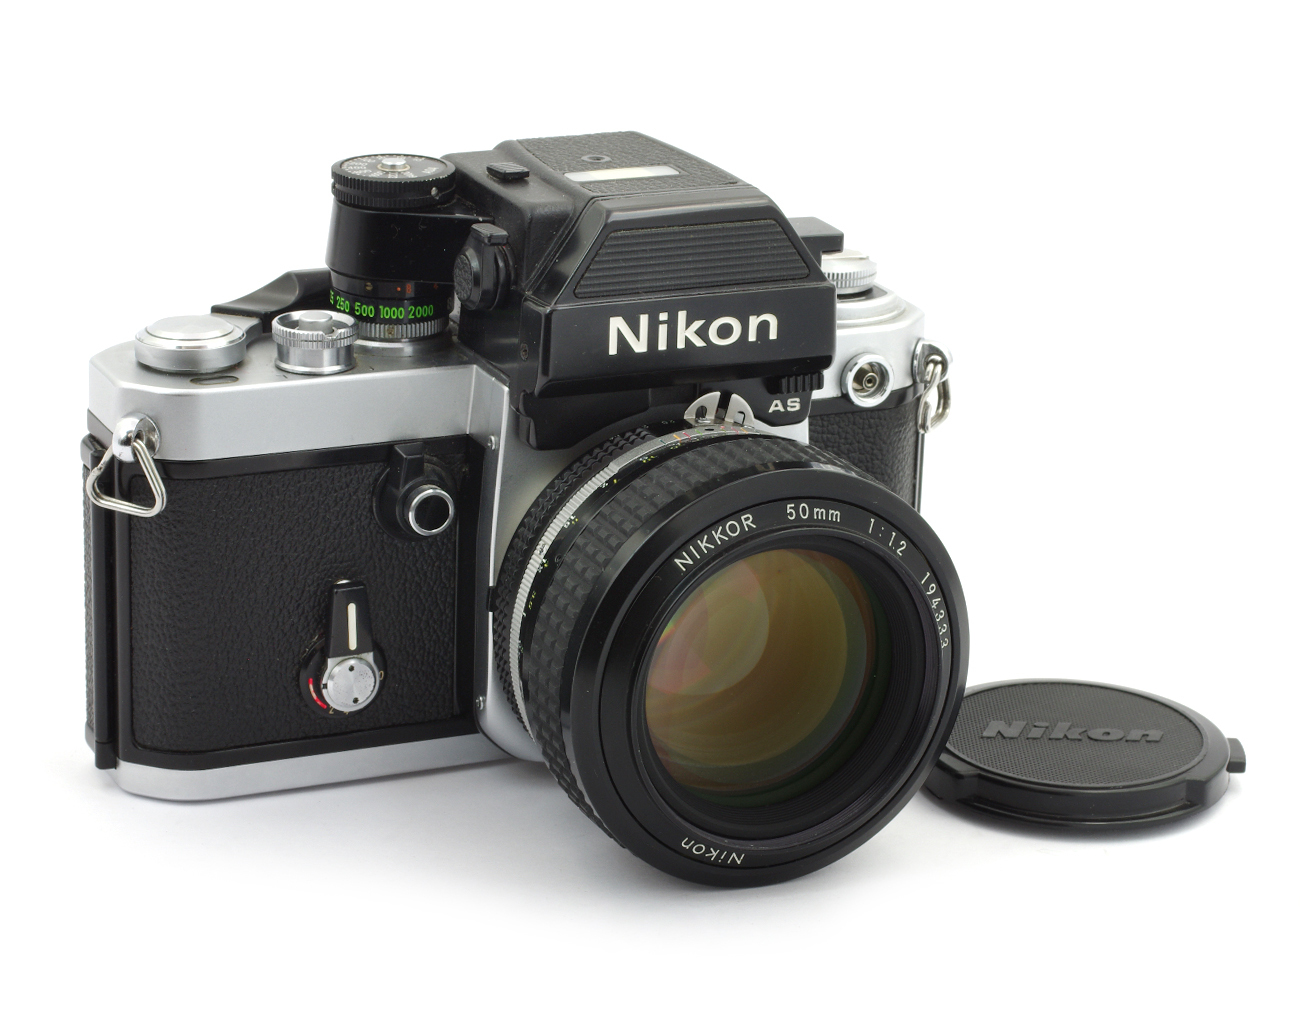 Nikon F2 AS Photomic 35mm Film Camera #7815170 with Nikkor 1.2/50 mm